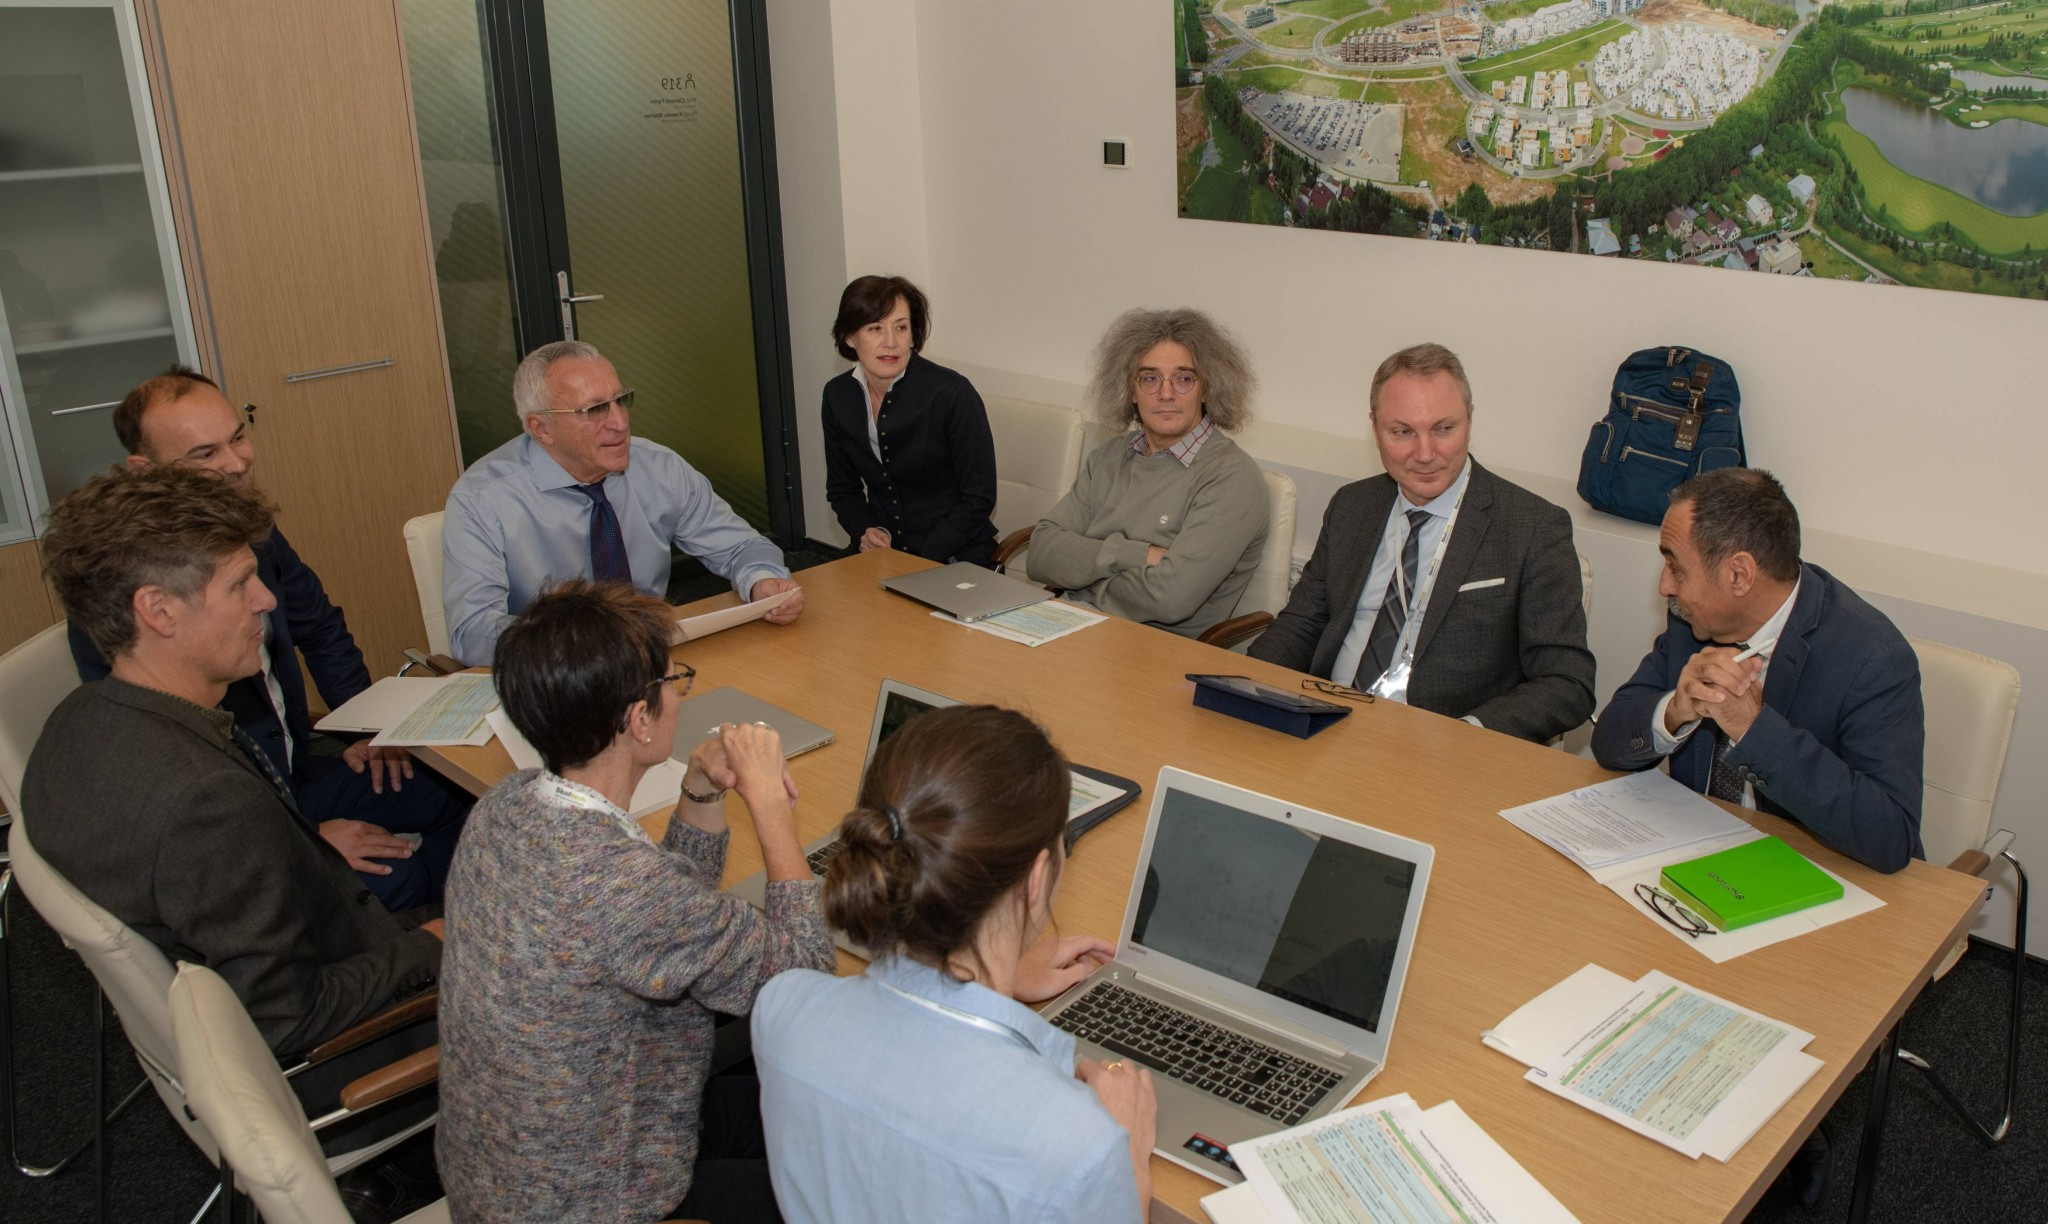 Image: HCÉRES representatives in discussion with members of Skoltech leadership and the Center for Life Sciences